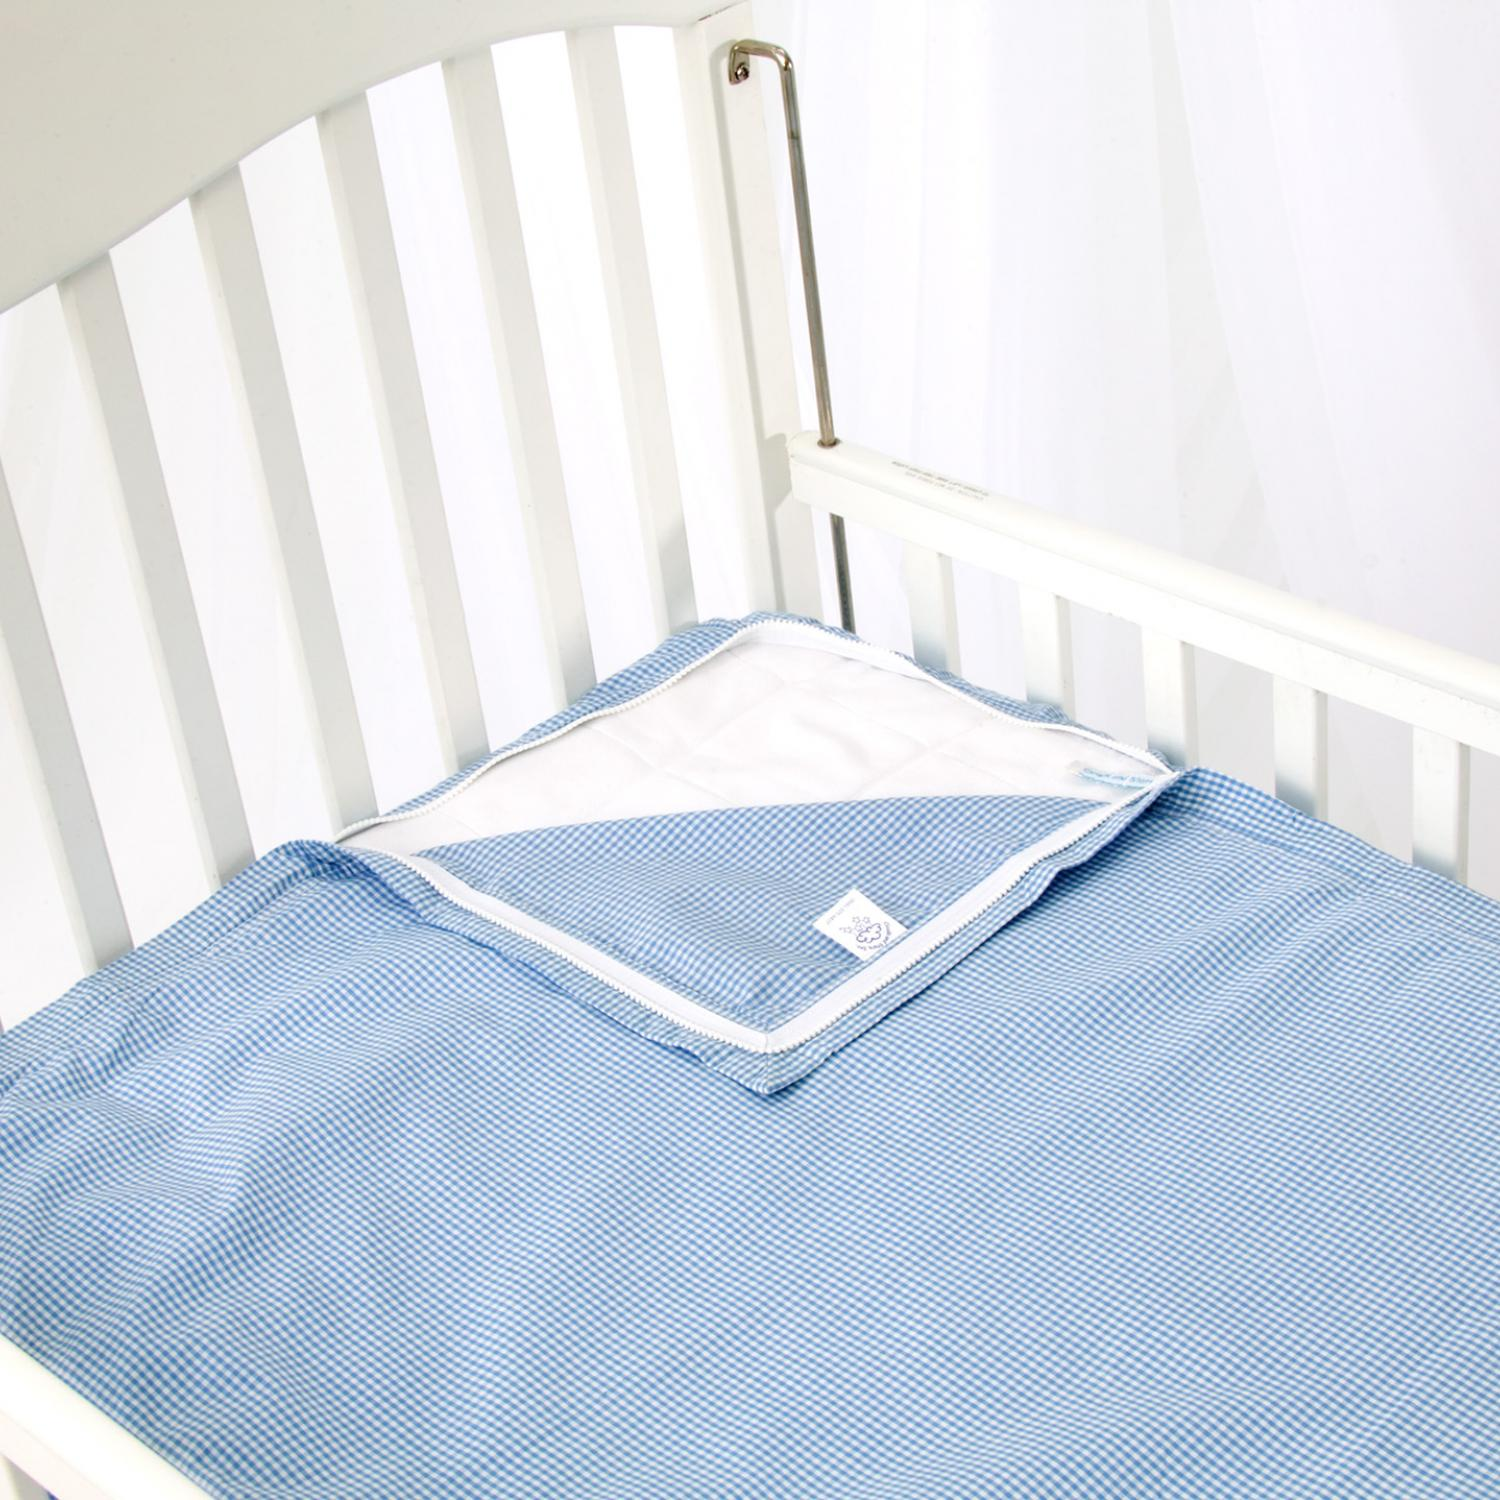 Best crib sheets for baby -